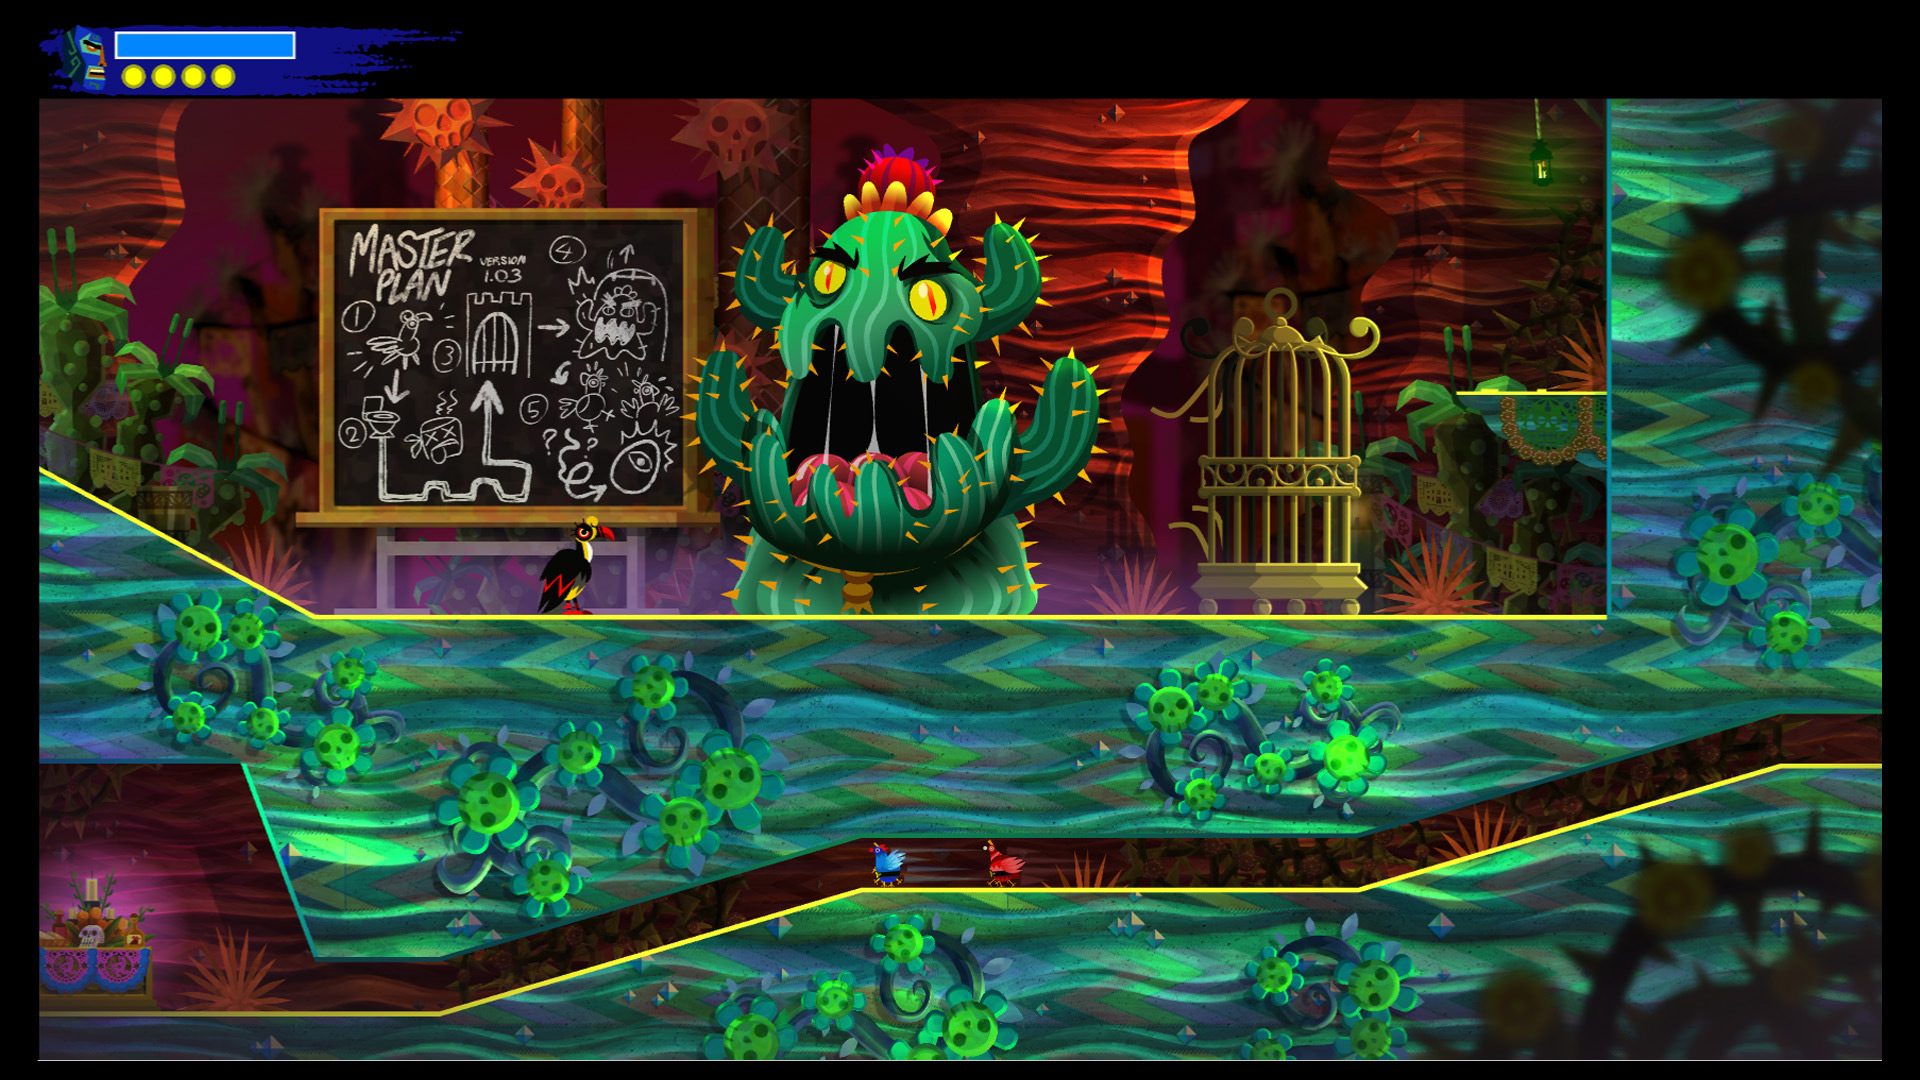 Guacamelee 2 is coming soon to Switch and Xbox One, so don't sleep on it screenshot